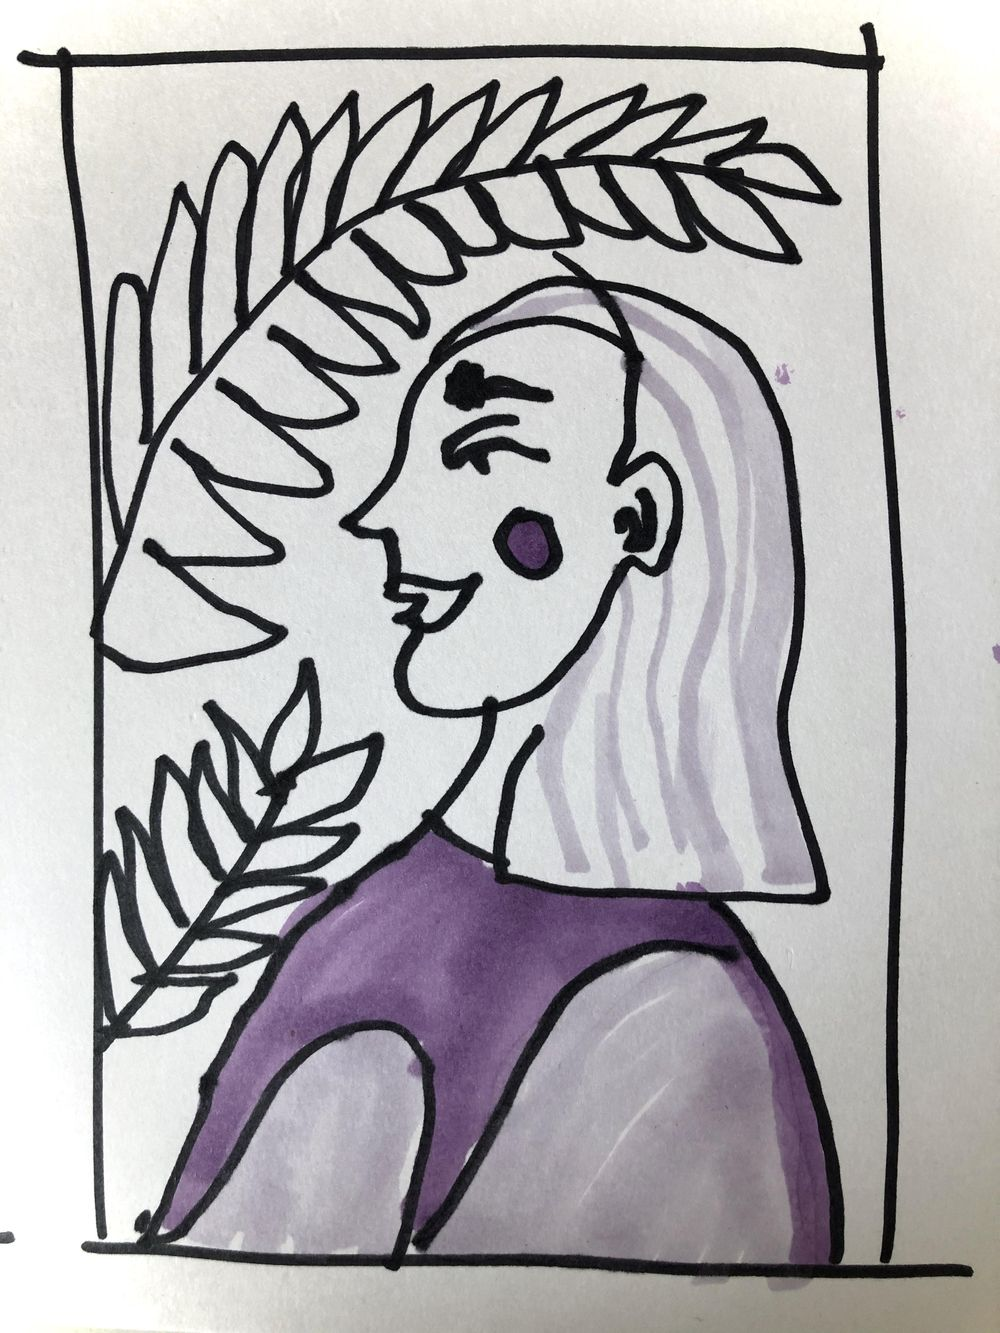 Eyes closed and with a left hand - image 2 - student project